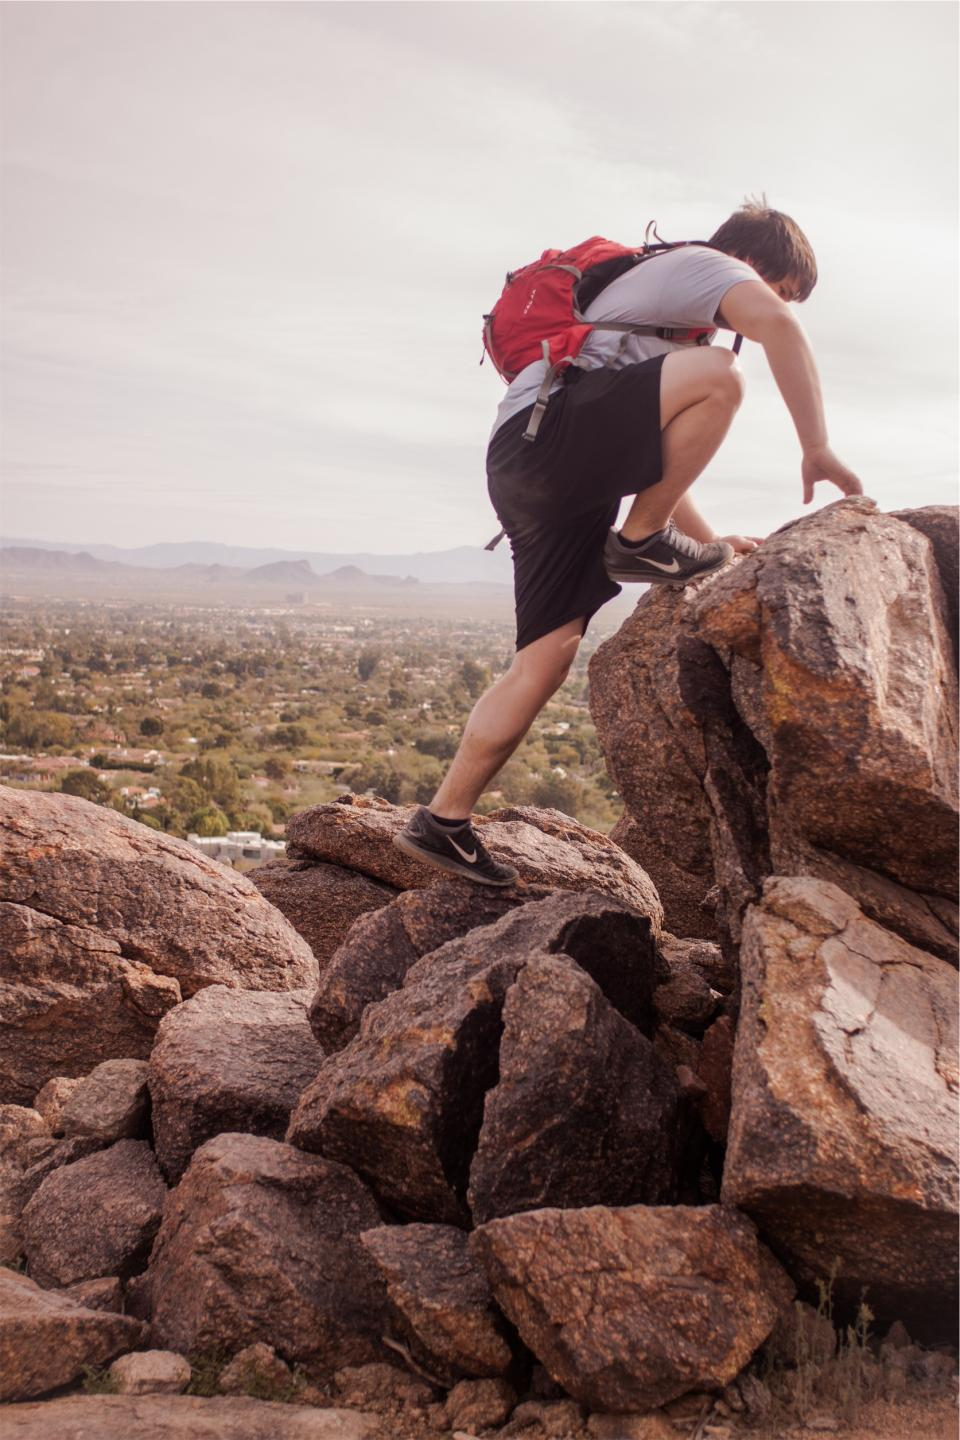 hiking, hiker, young, guy, boy, people, rocks, boulders, backpack, knapsack, shorts, tshirt, fitness, nike, shoes